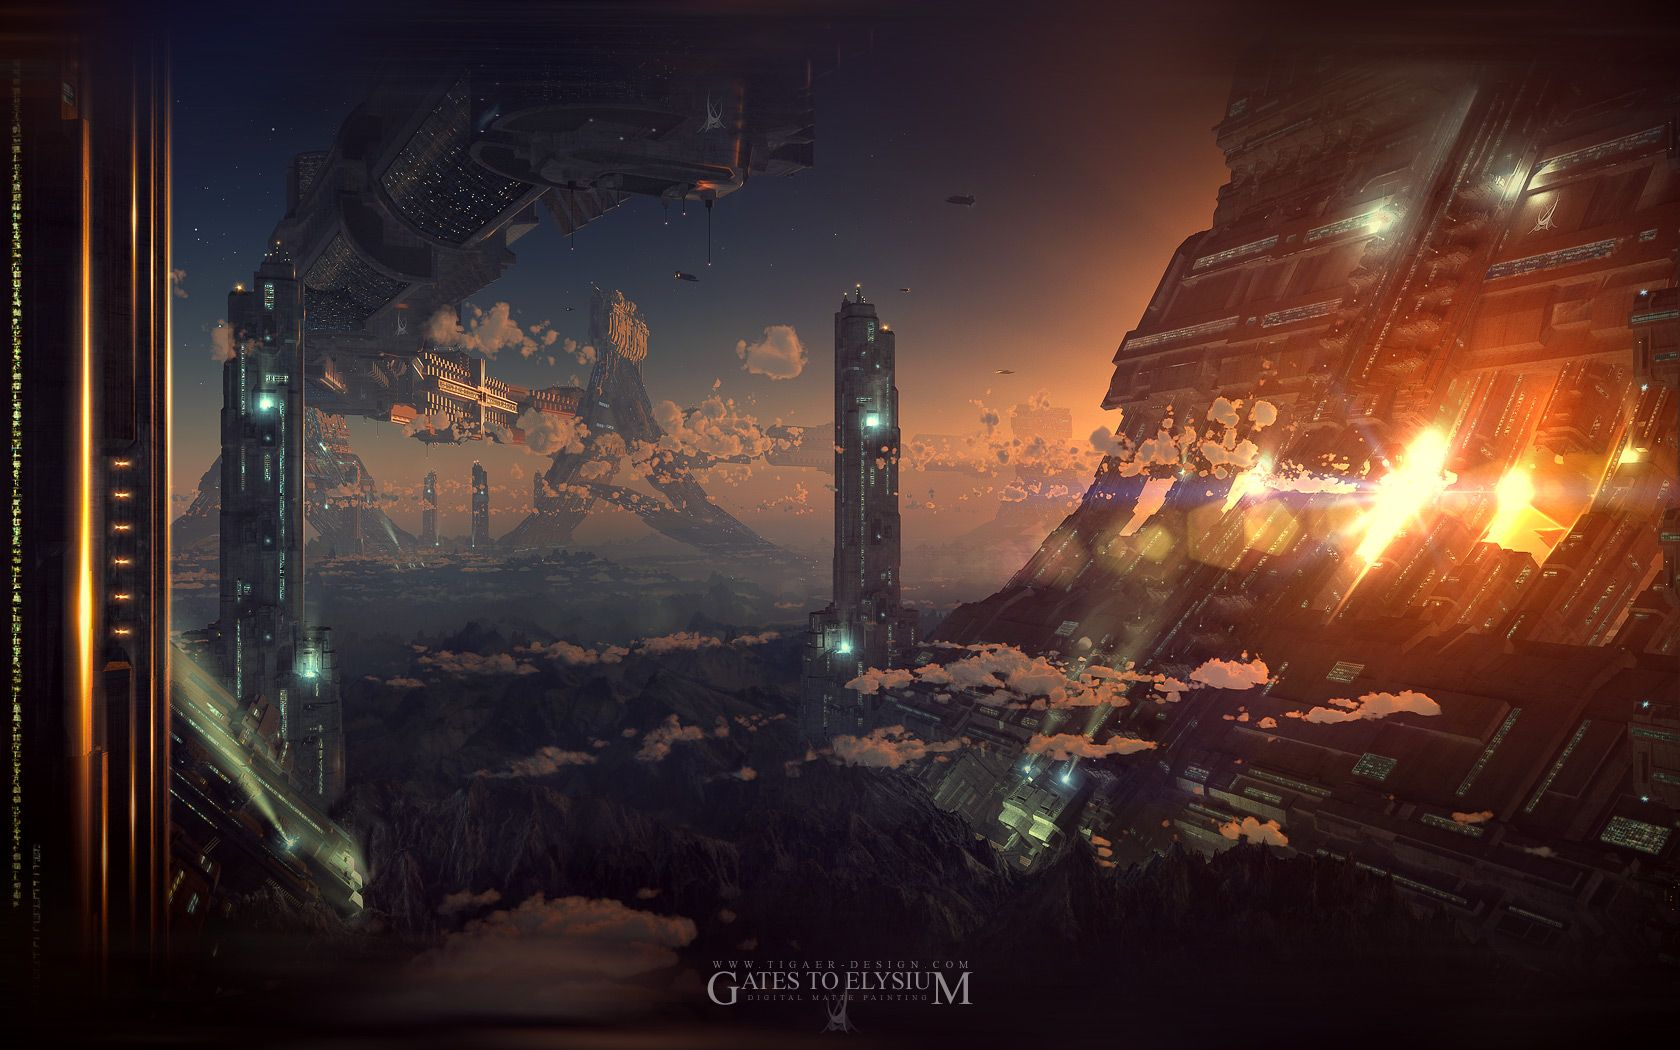 Http V5 Tigaer Design Com Gallery Painting Gte 1680 Jpg Sci Fi Wallpaper Futuristic City City Artwork